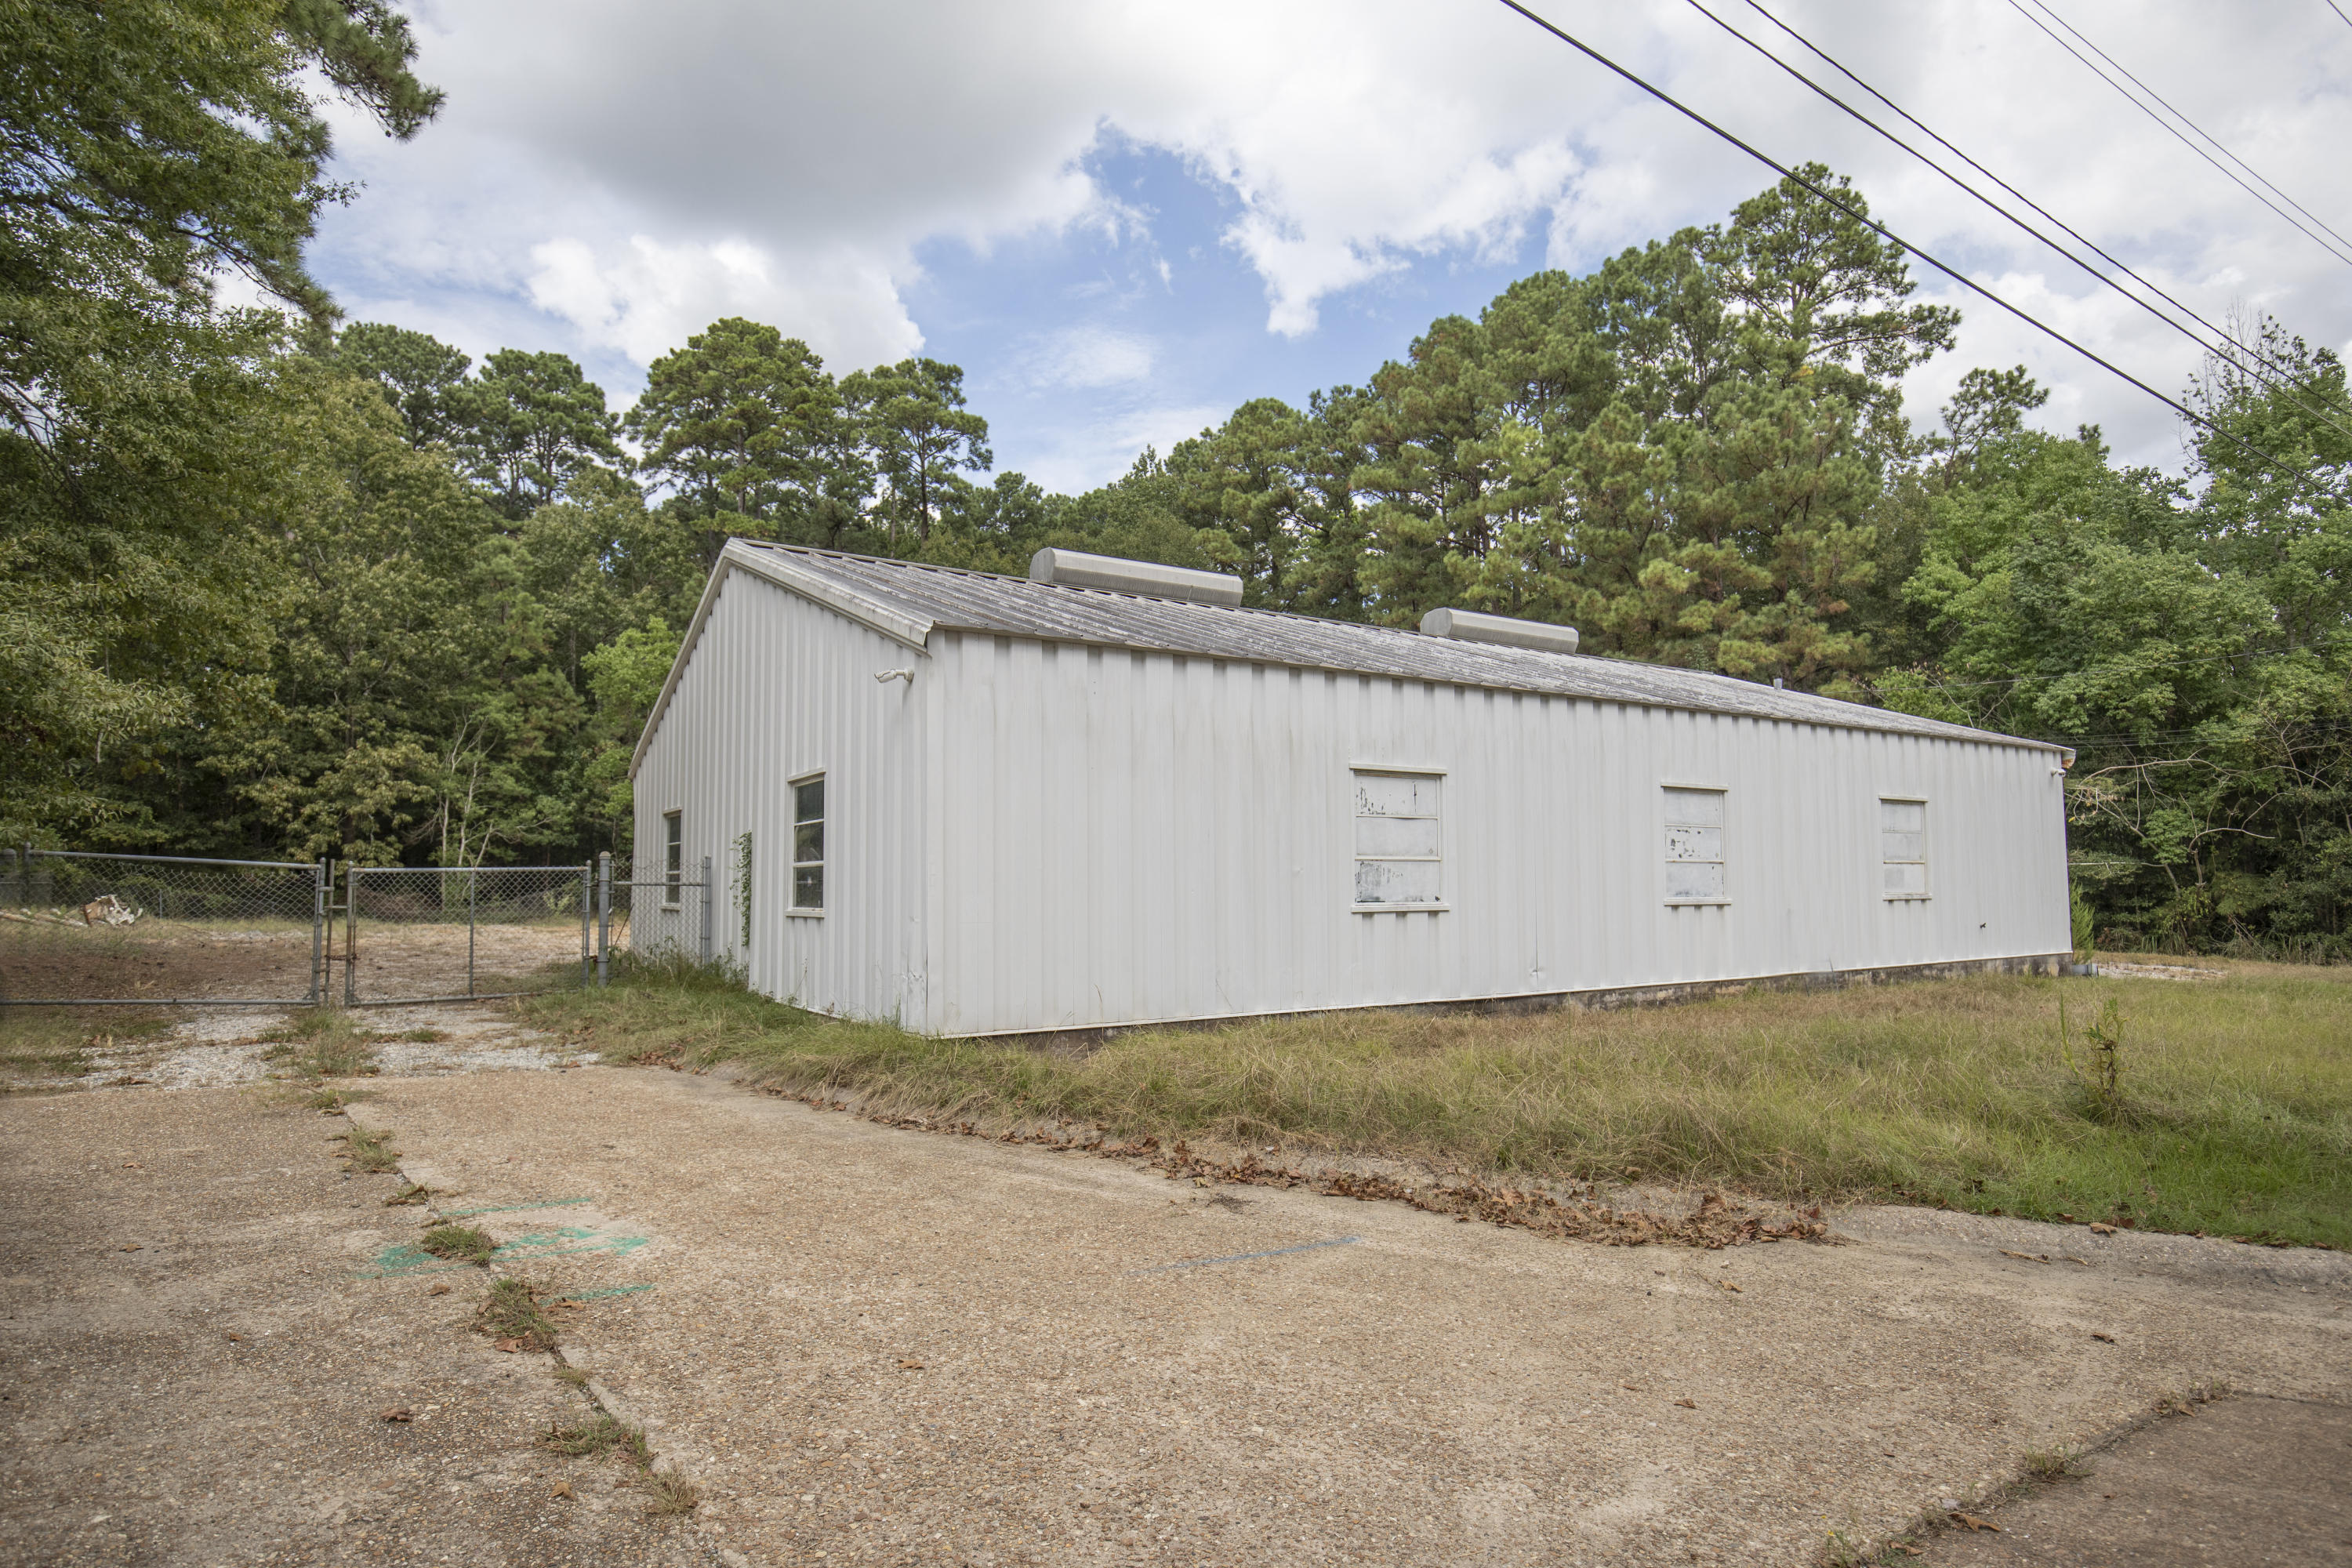 Leesville commercial property for sale, 308 Concord Ave, Leesville LA - $169,900